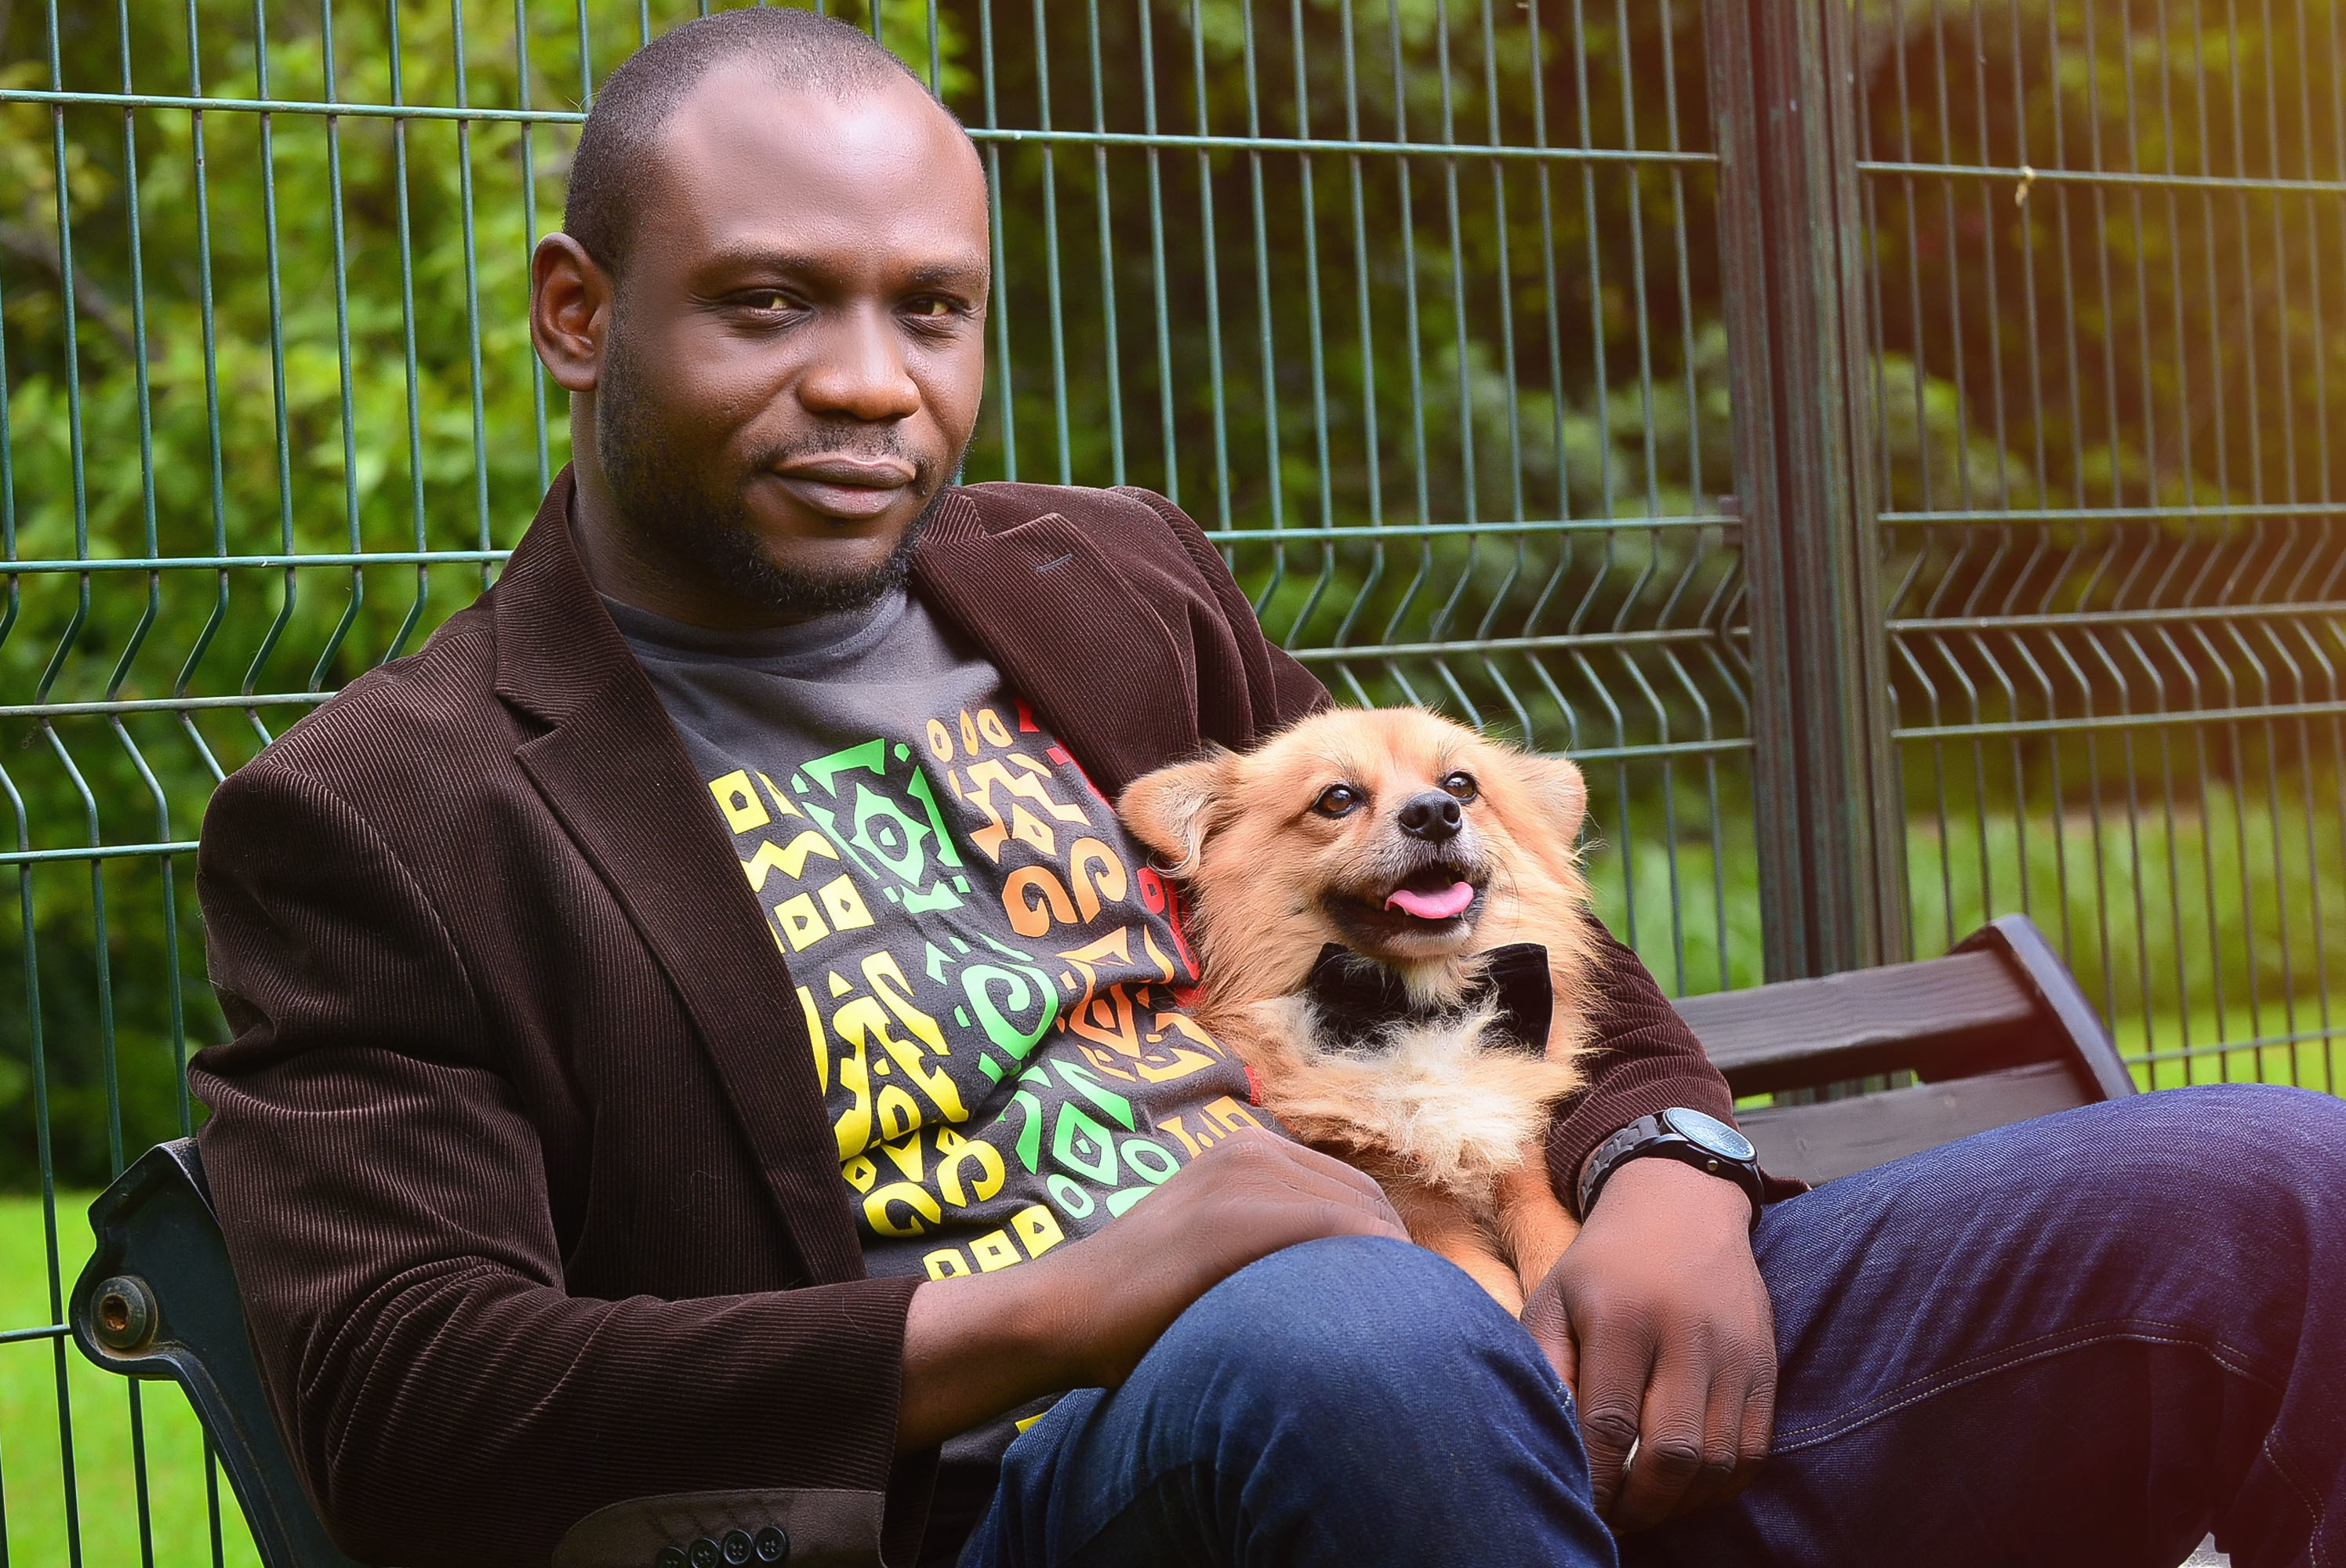 Entrepreneur of the Day 029 – Dr. Sunday Agbonika